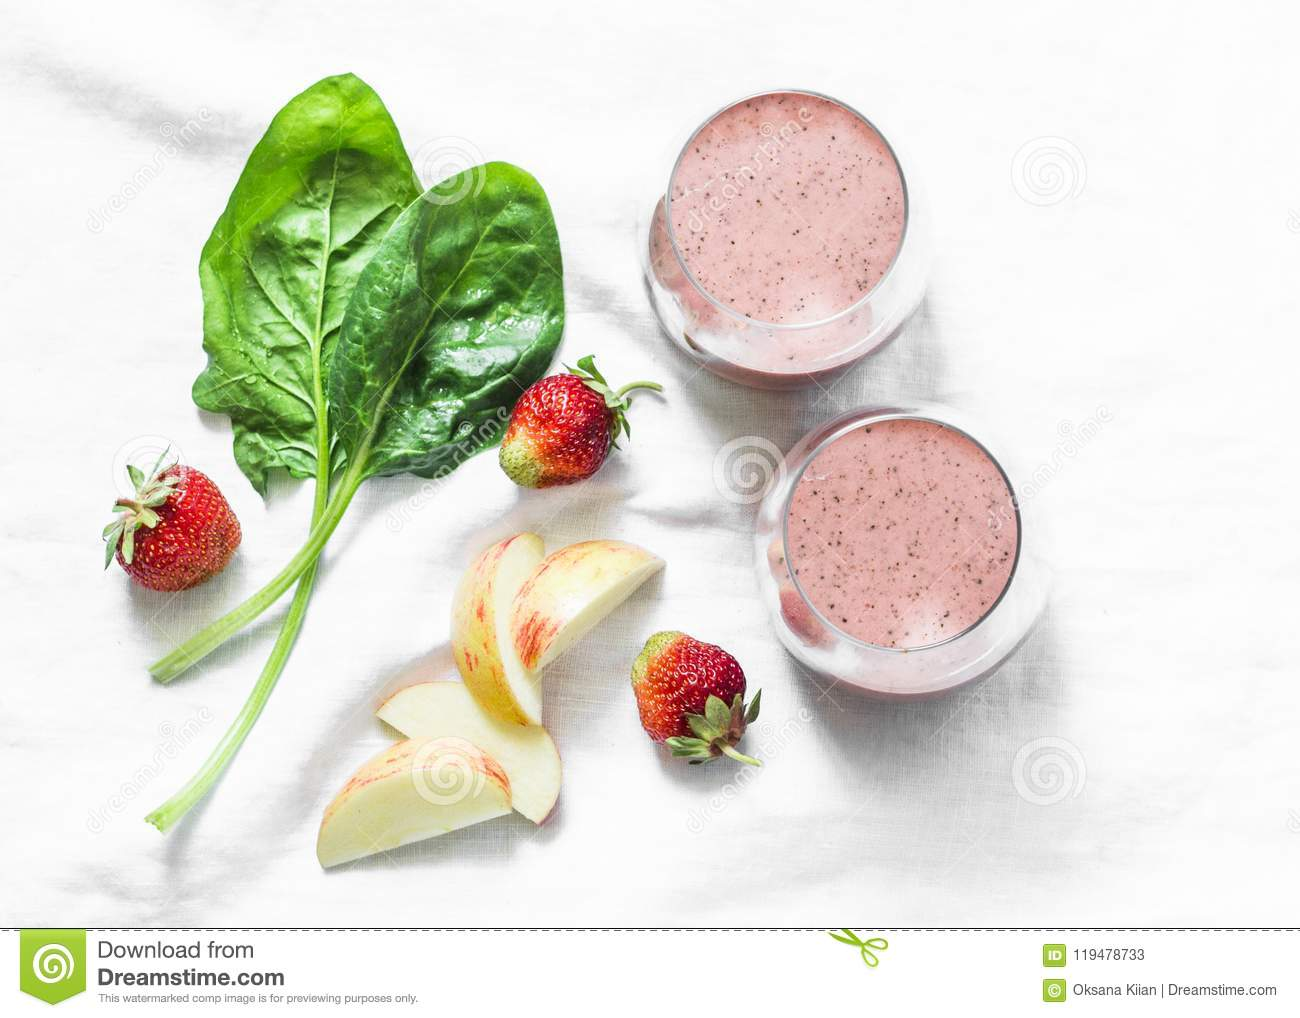 Coconut probiotic yogurt, spinach, apple, strawberry detox smoothie on a light background, top view. Healthy diet food concept.